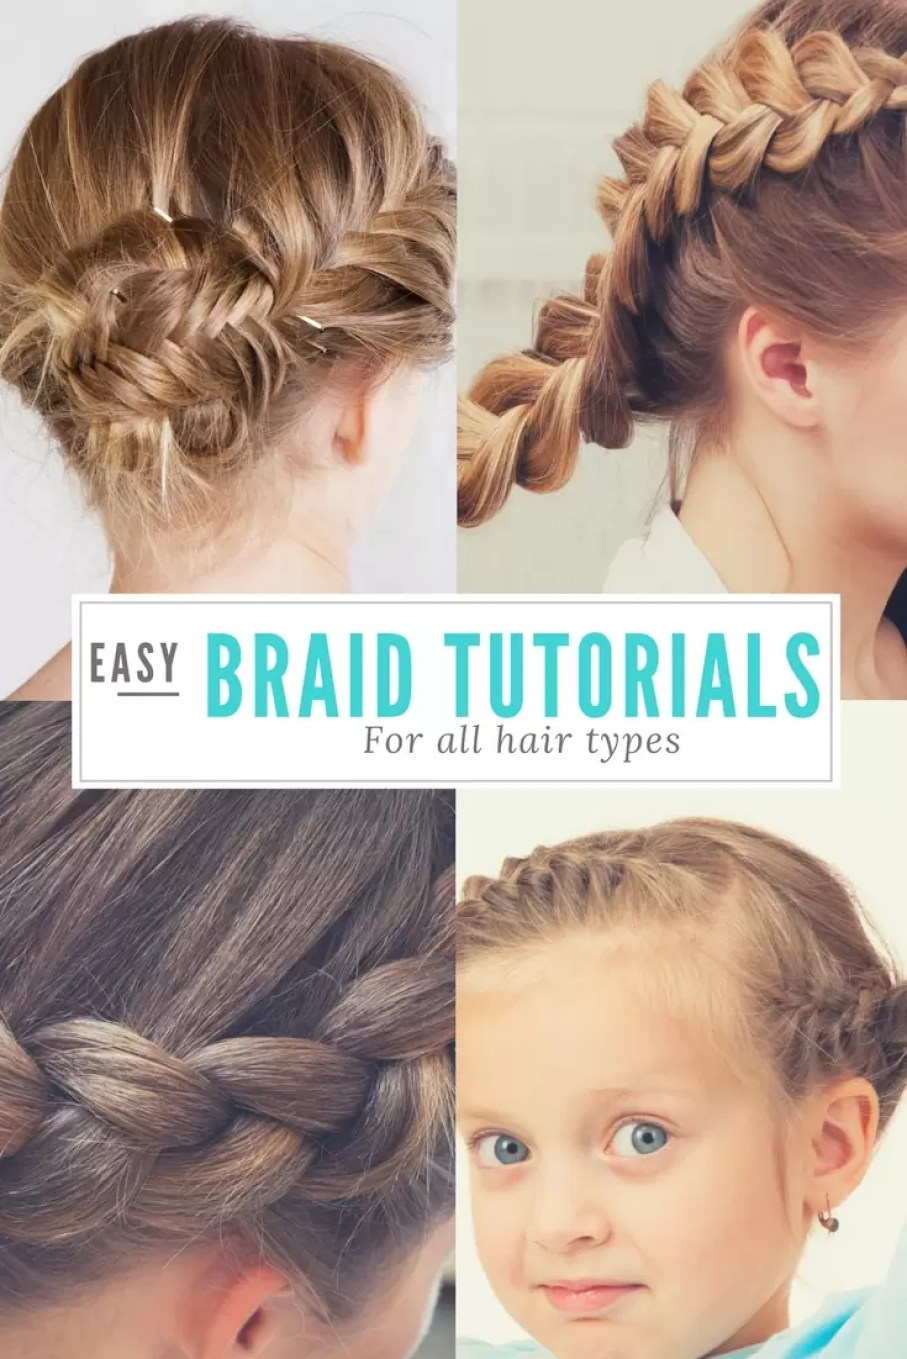 Braid Tutorials for little girls